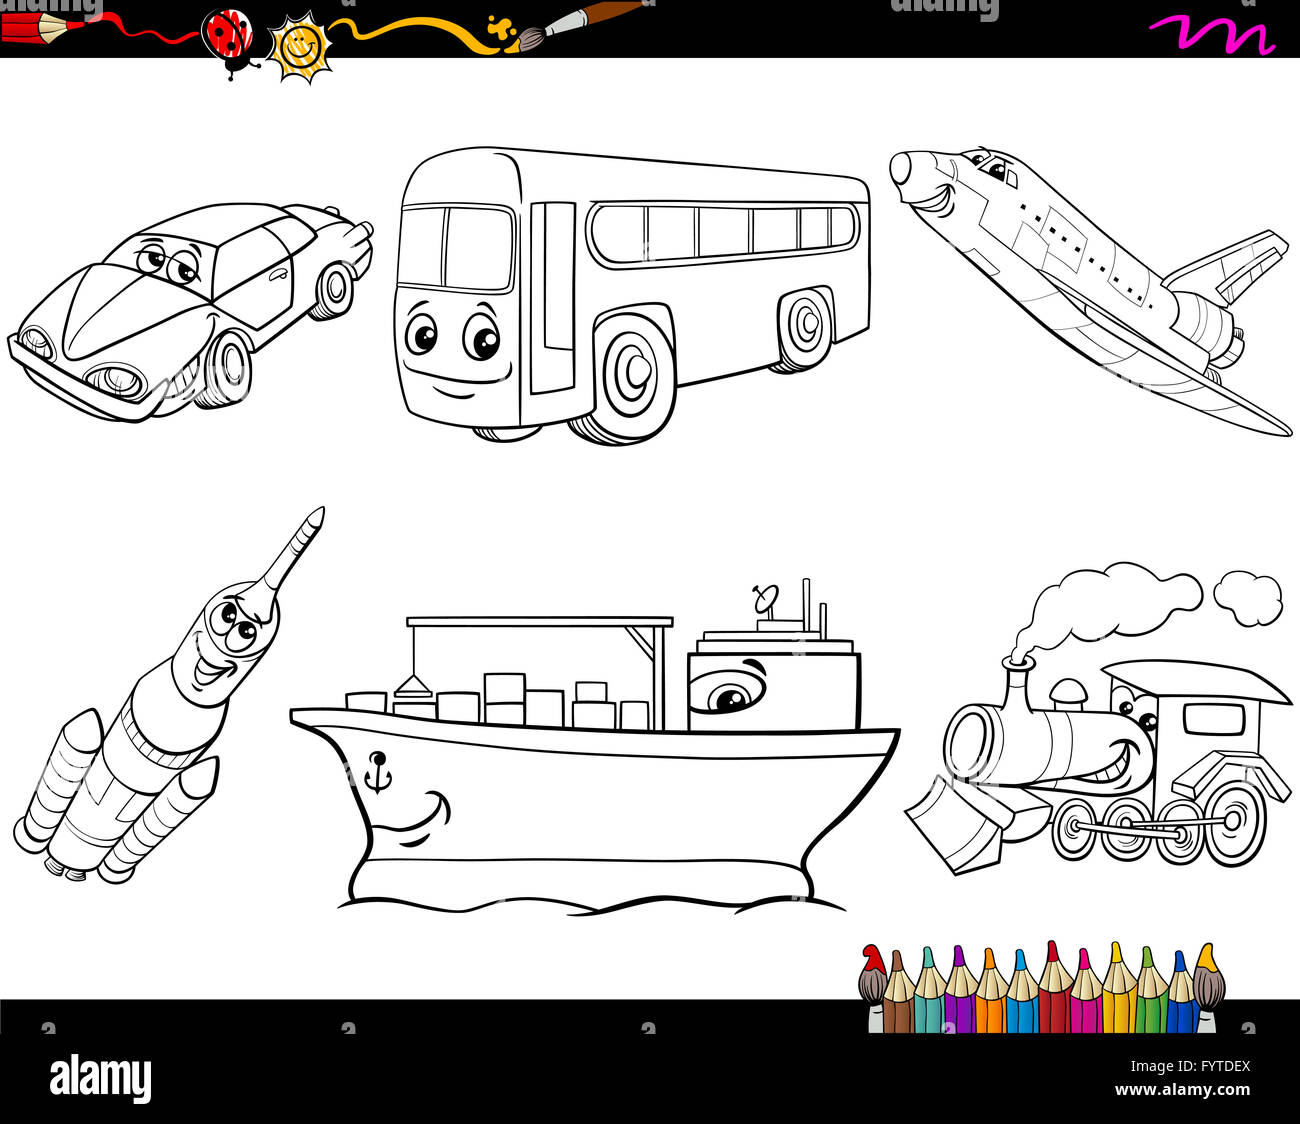 Transport Vehicles Coloring Page Stock Photo 103185010 Alamy